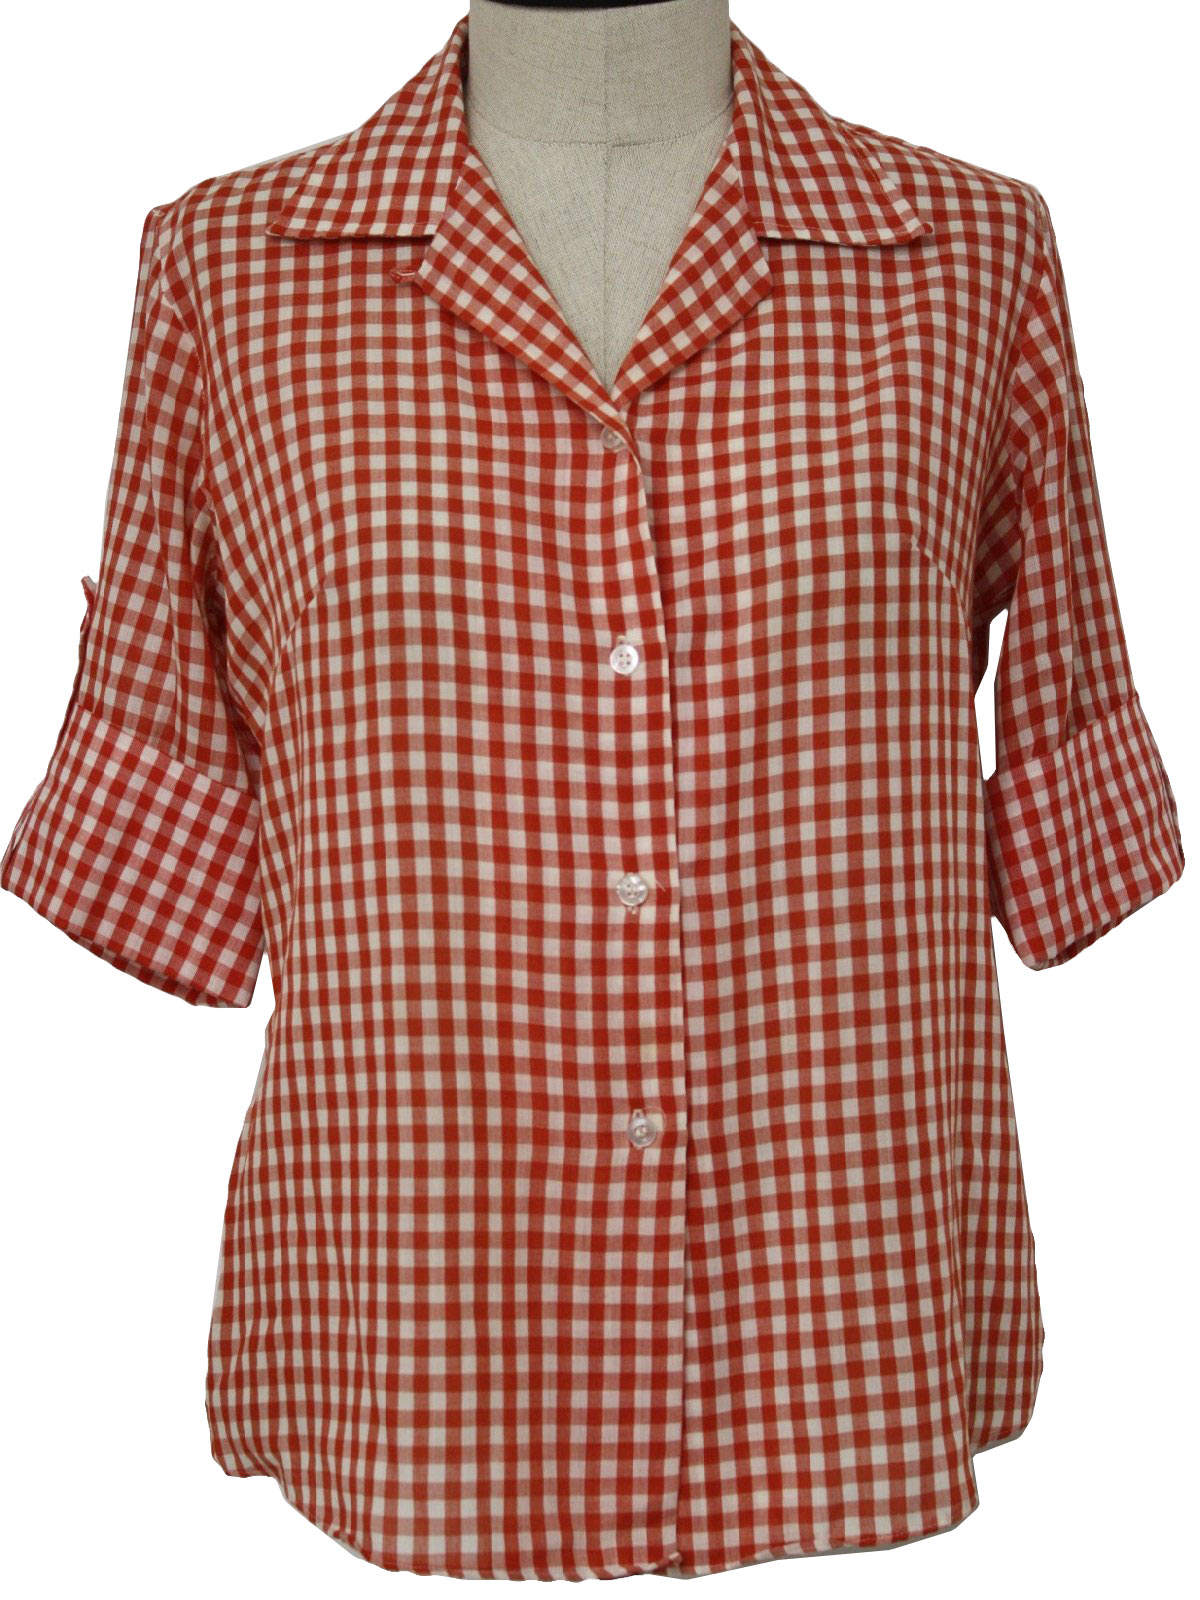 1950's Shirt (Classic Shirt): 50s style (made in early 70s ...